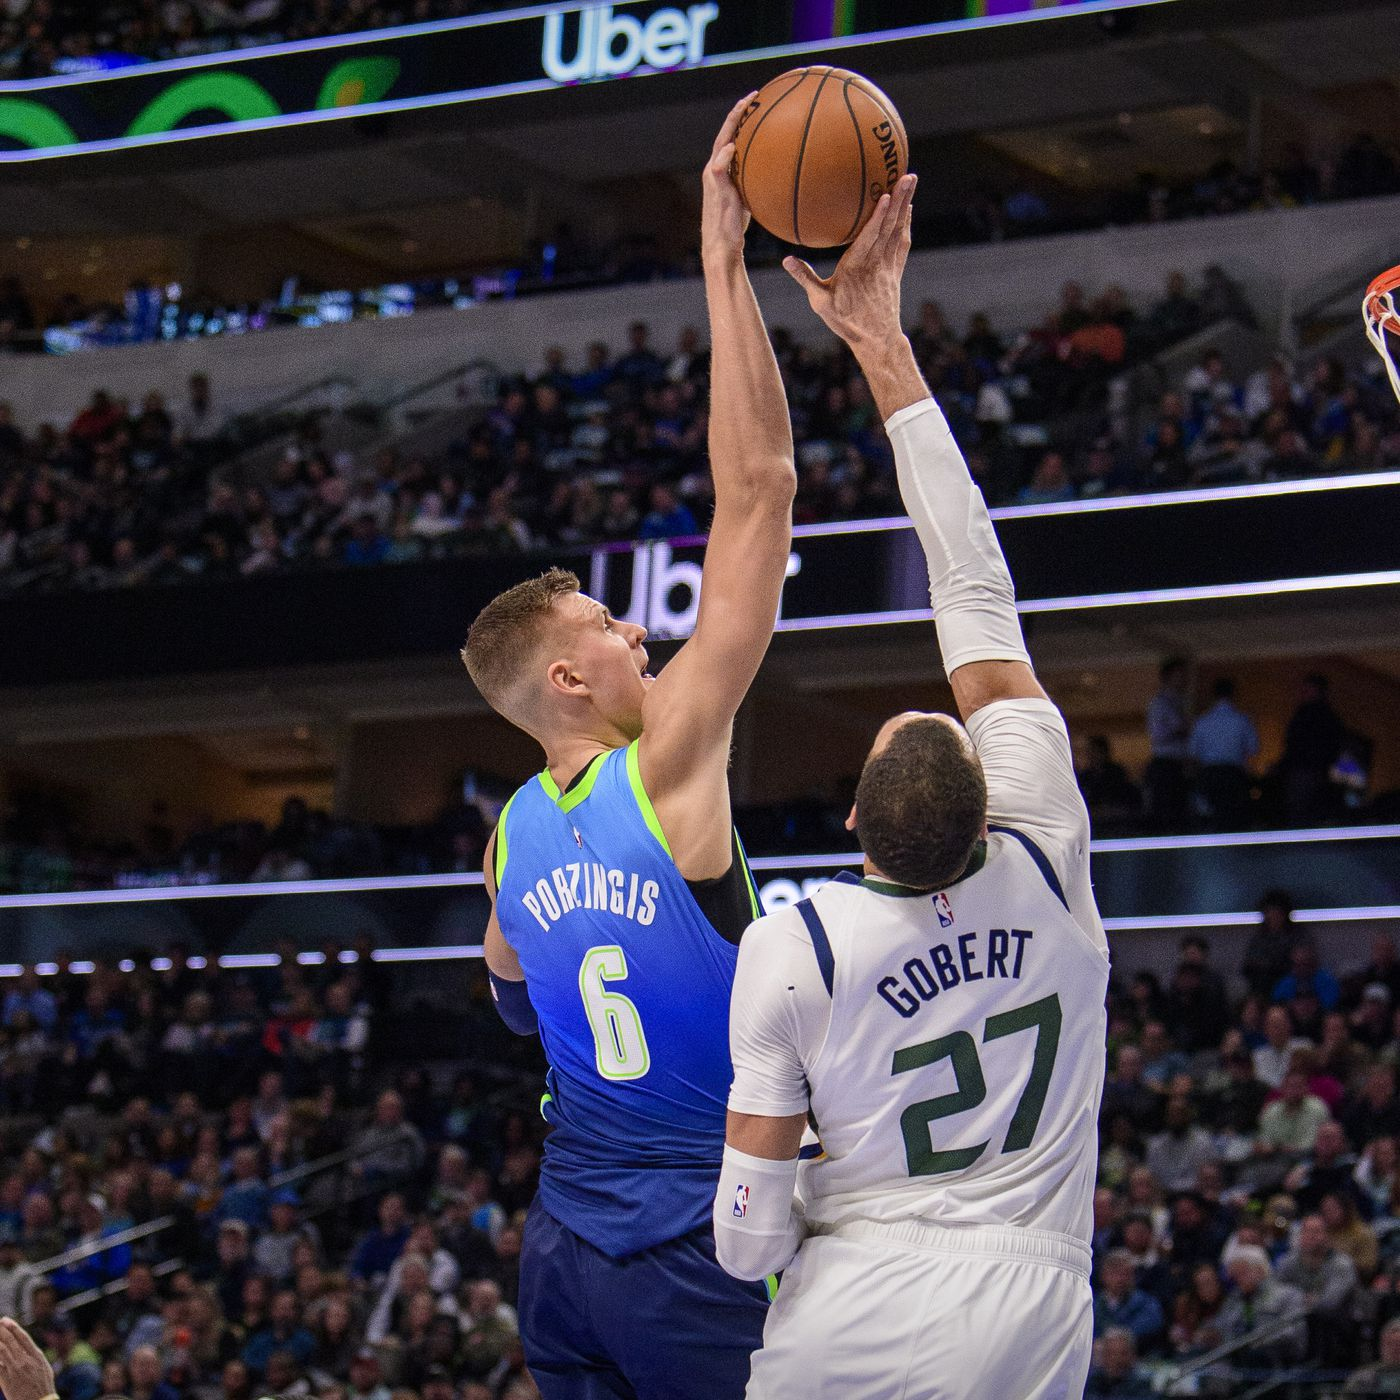 Nba To Suspend Play Following Rudy Gobert Of The Jazz Testing Positive For Covid 19 Mavs Moneyball